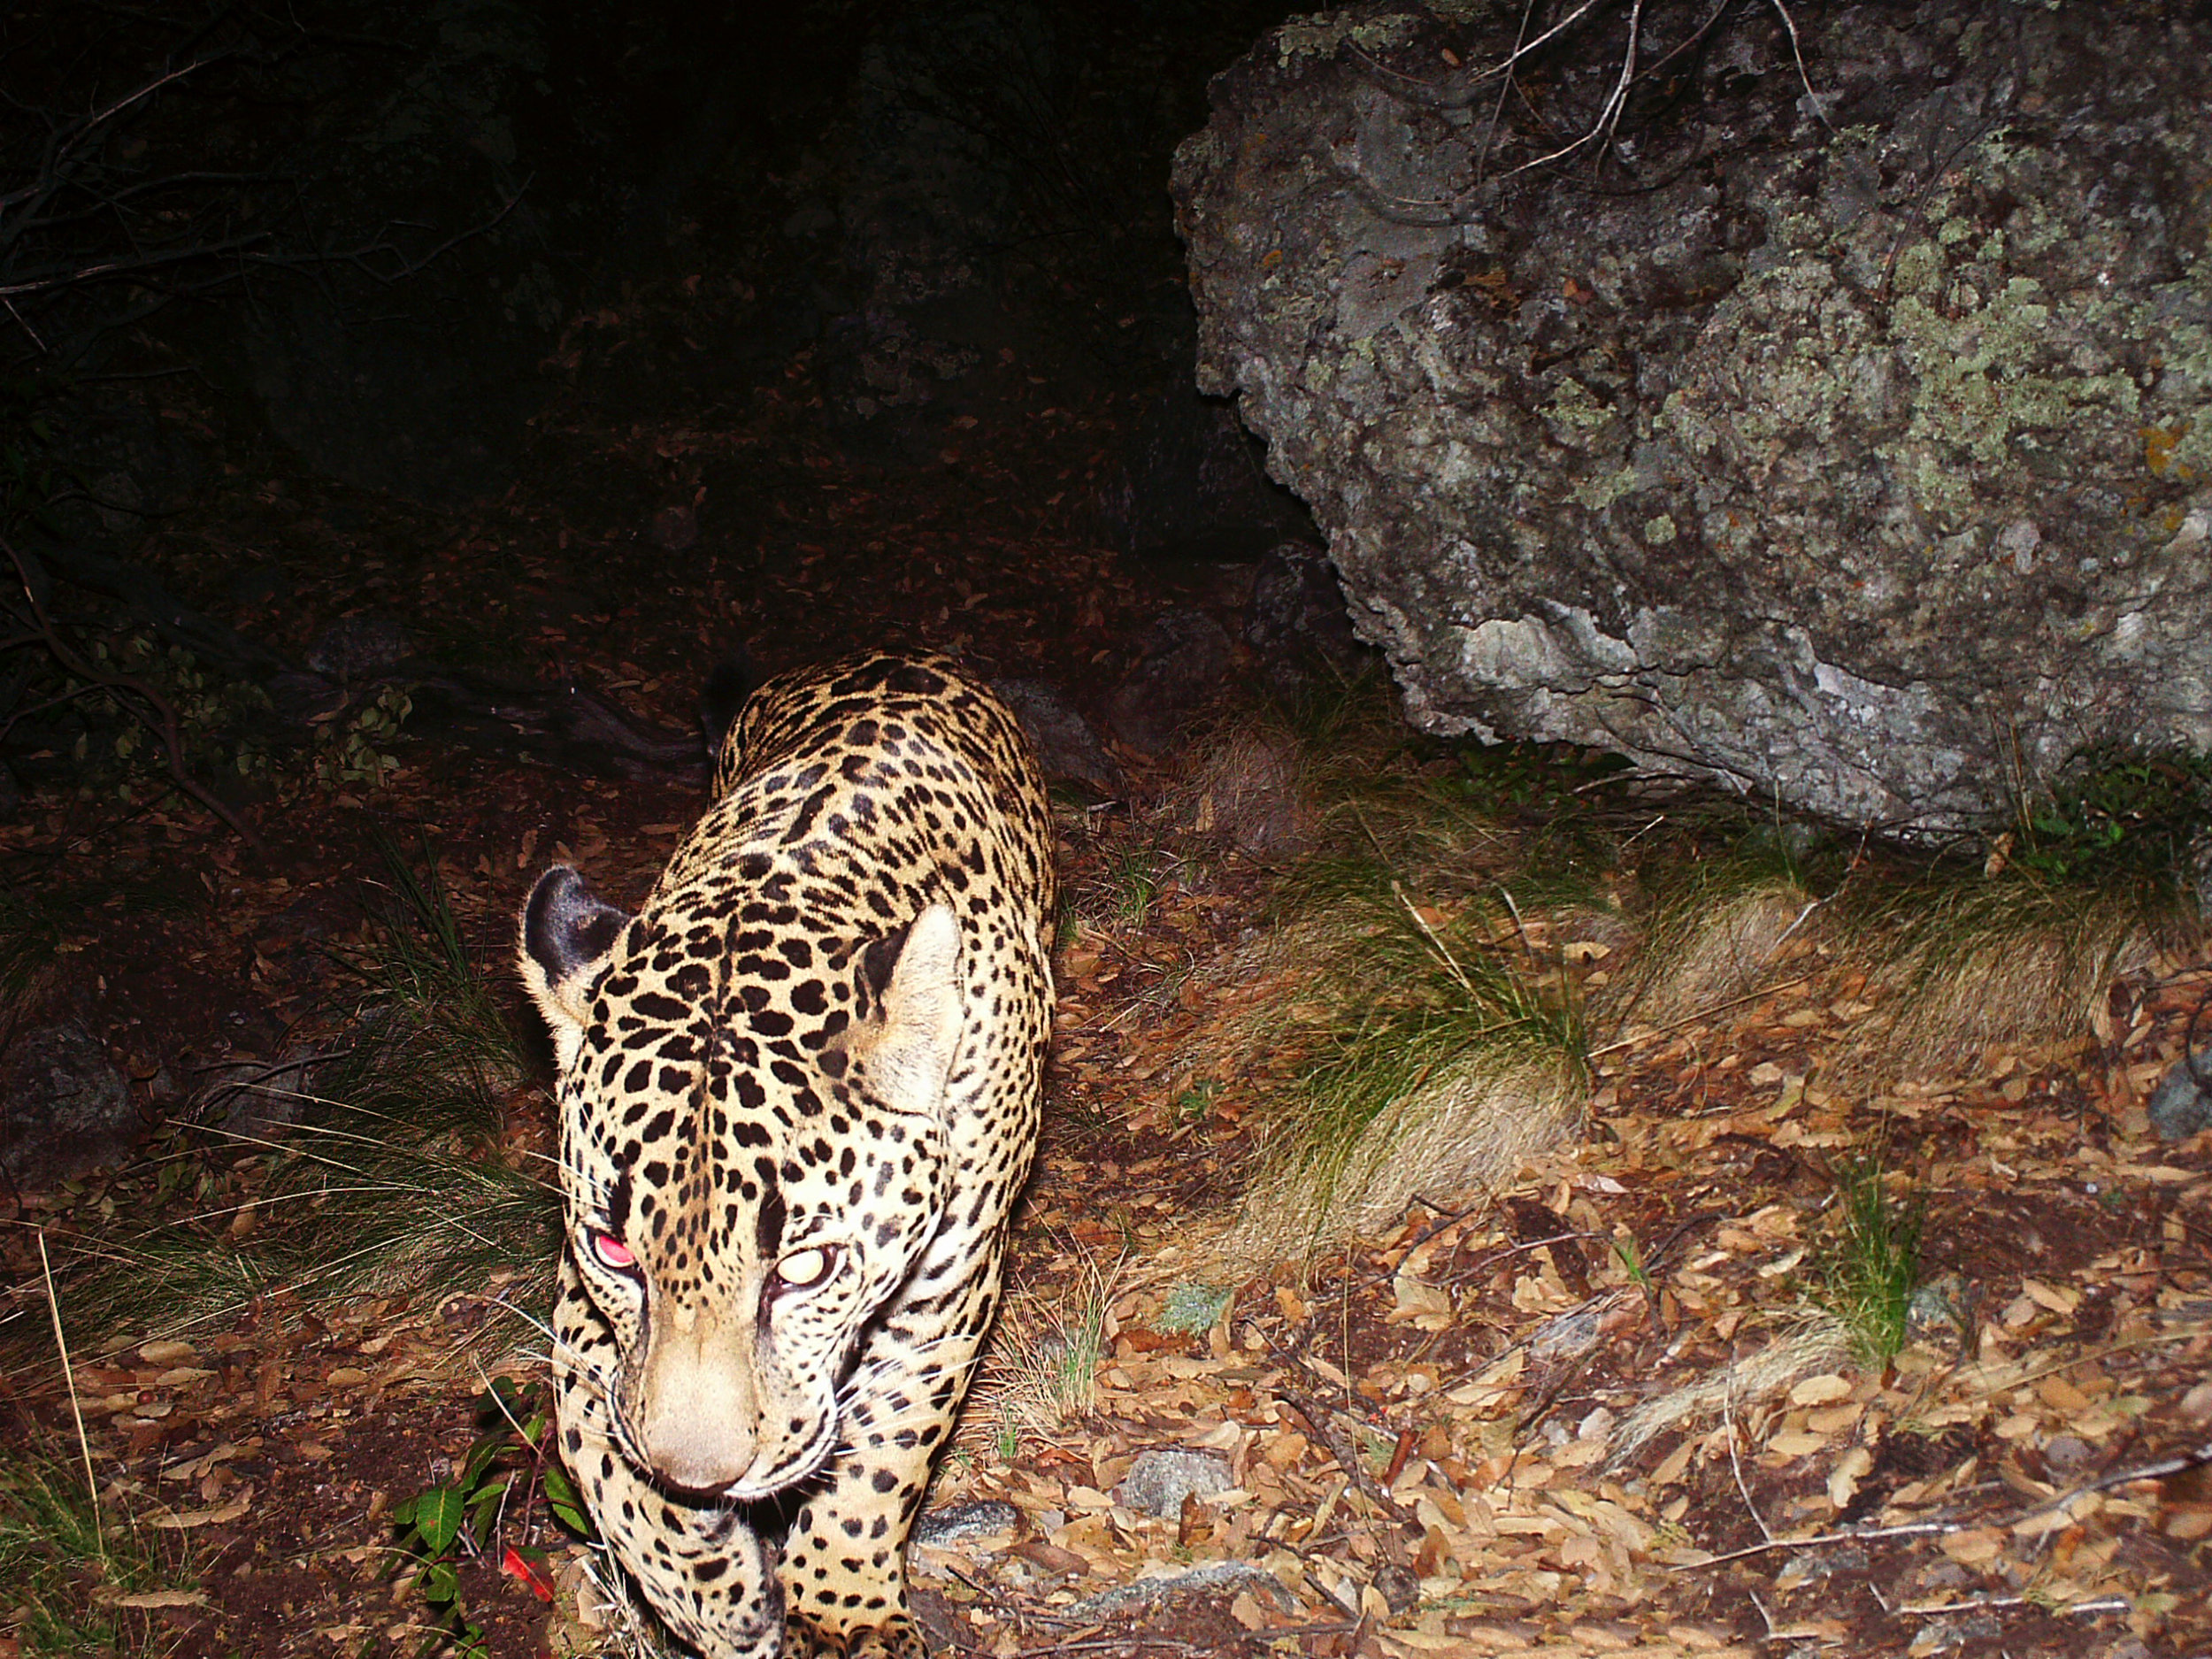 A large male jaguar known as El jefe is camera-trapped in the Santa Rita Mountains, south of Tucson, Ariz. Photo courtesy of the Center for Biological Diversity.